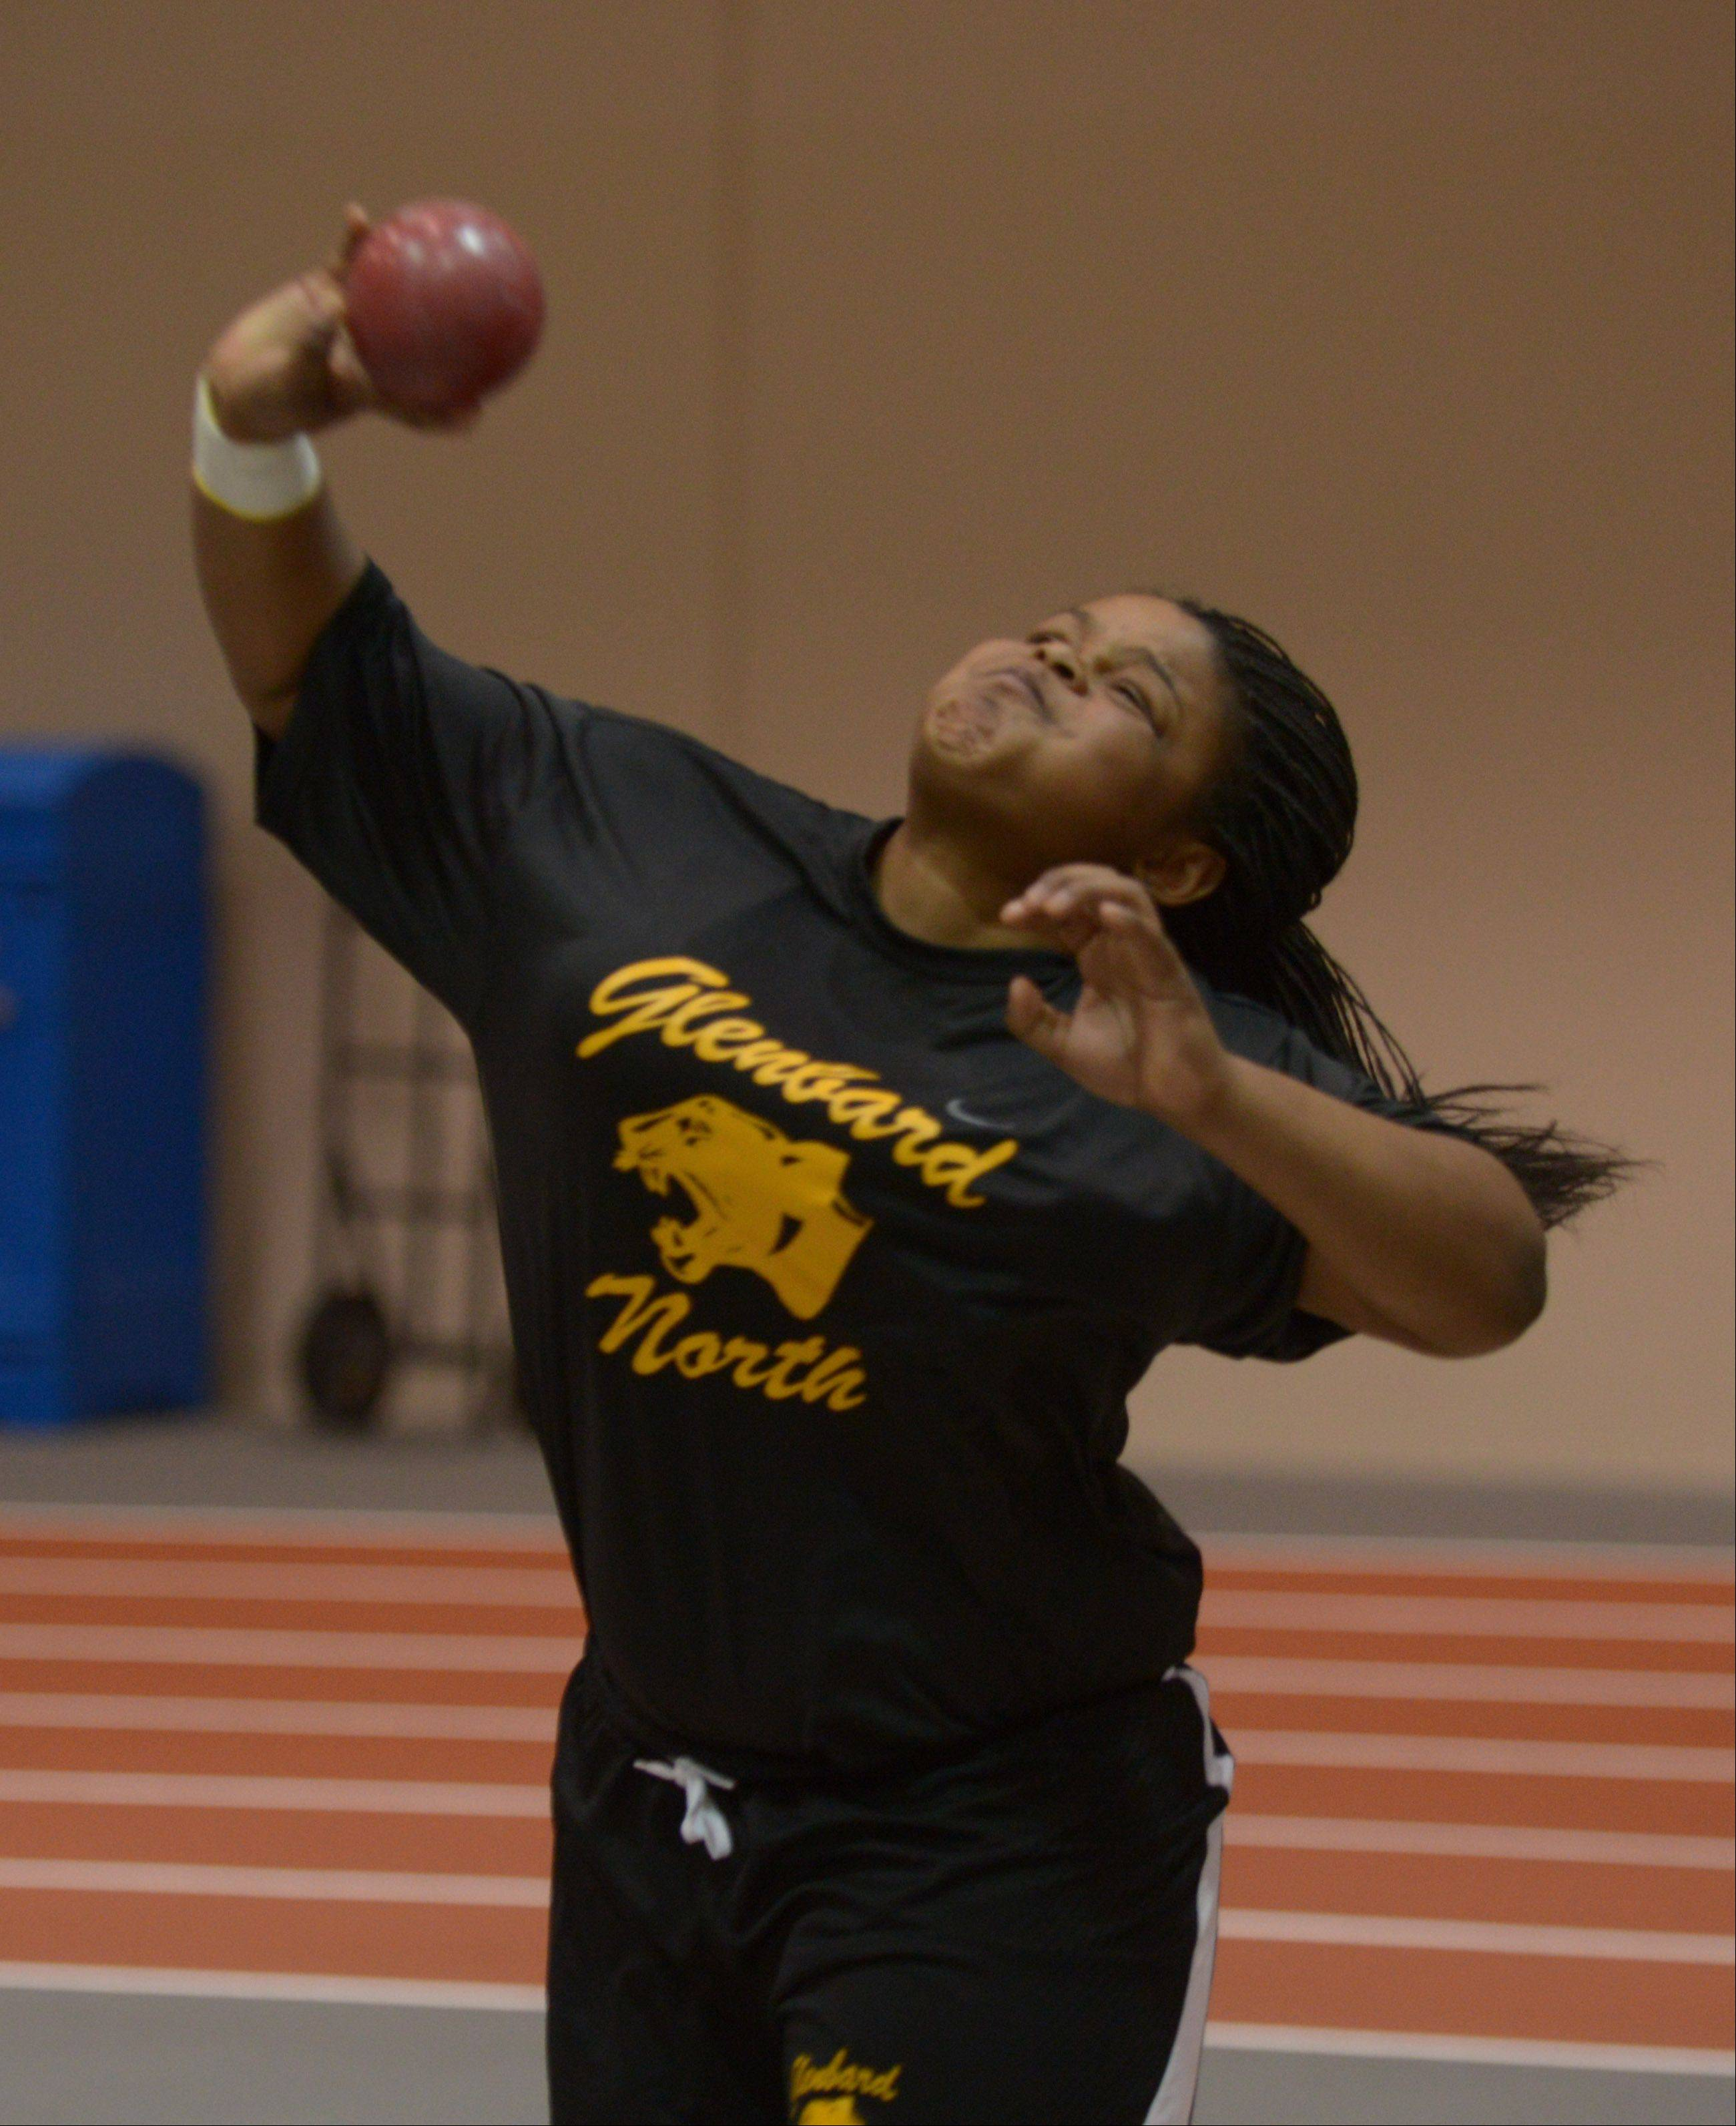 Tasia Collins of Glenbard North takes part in the shot put during the DuPage Valley Conference girls indoor track meet at North Central College Thursday.